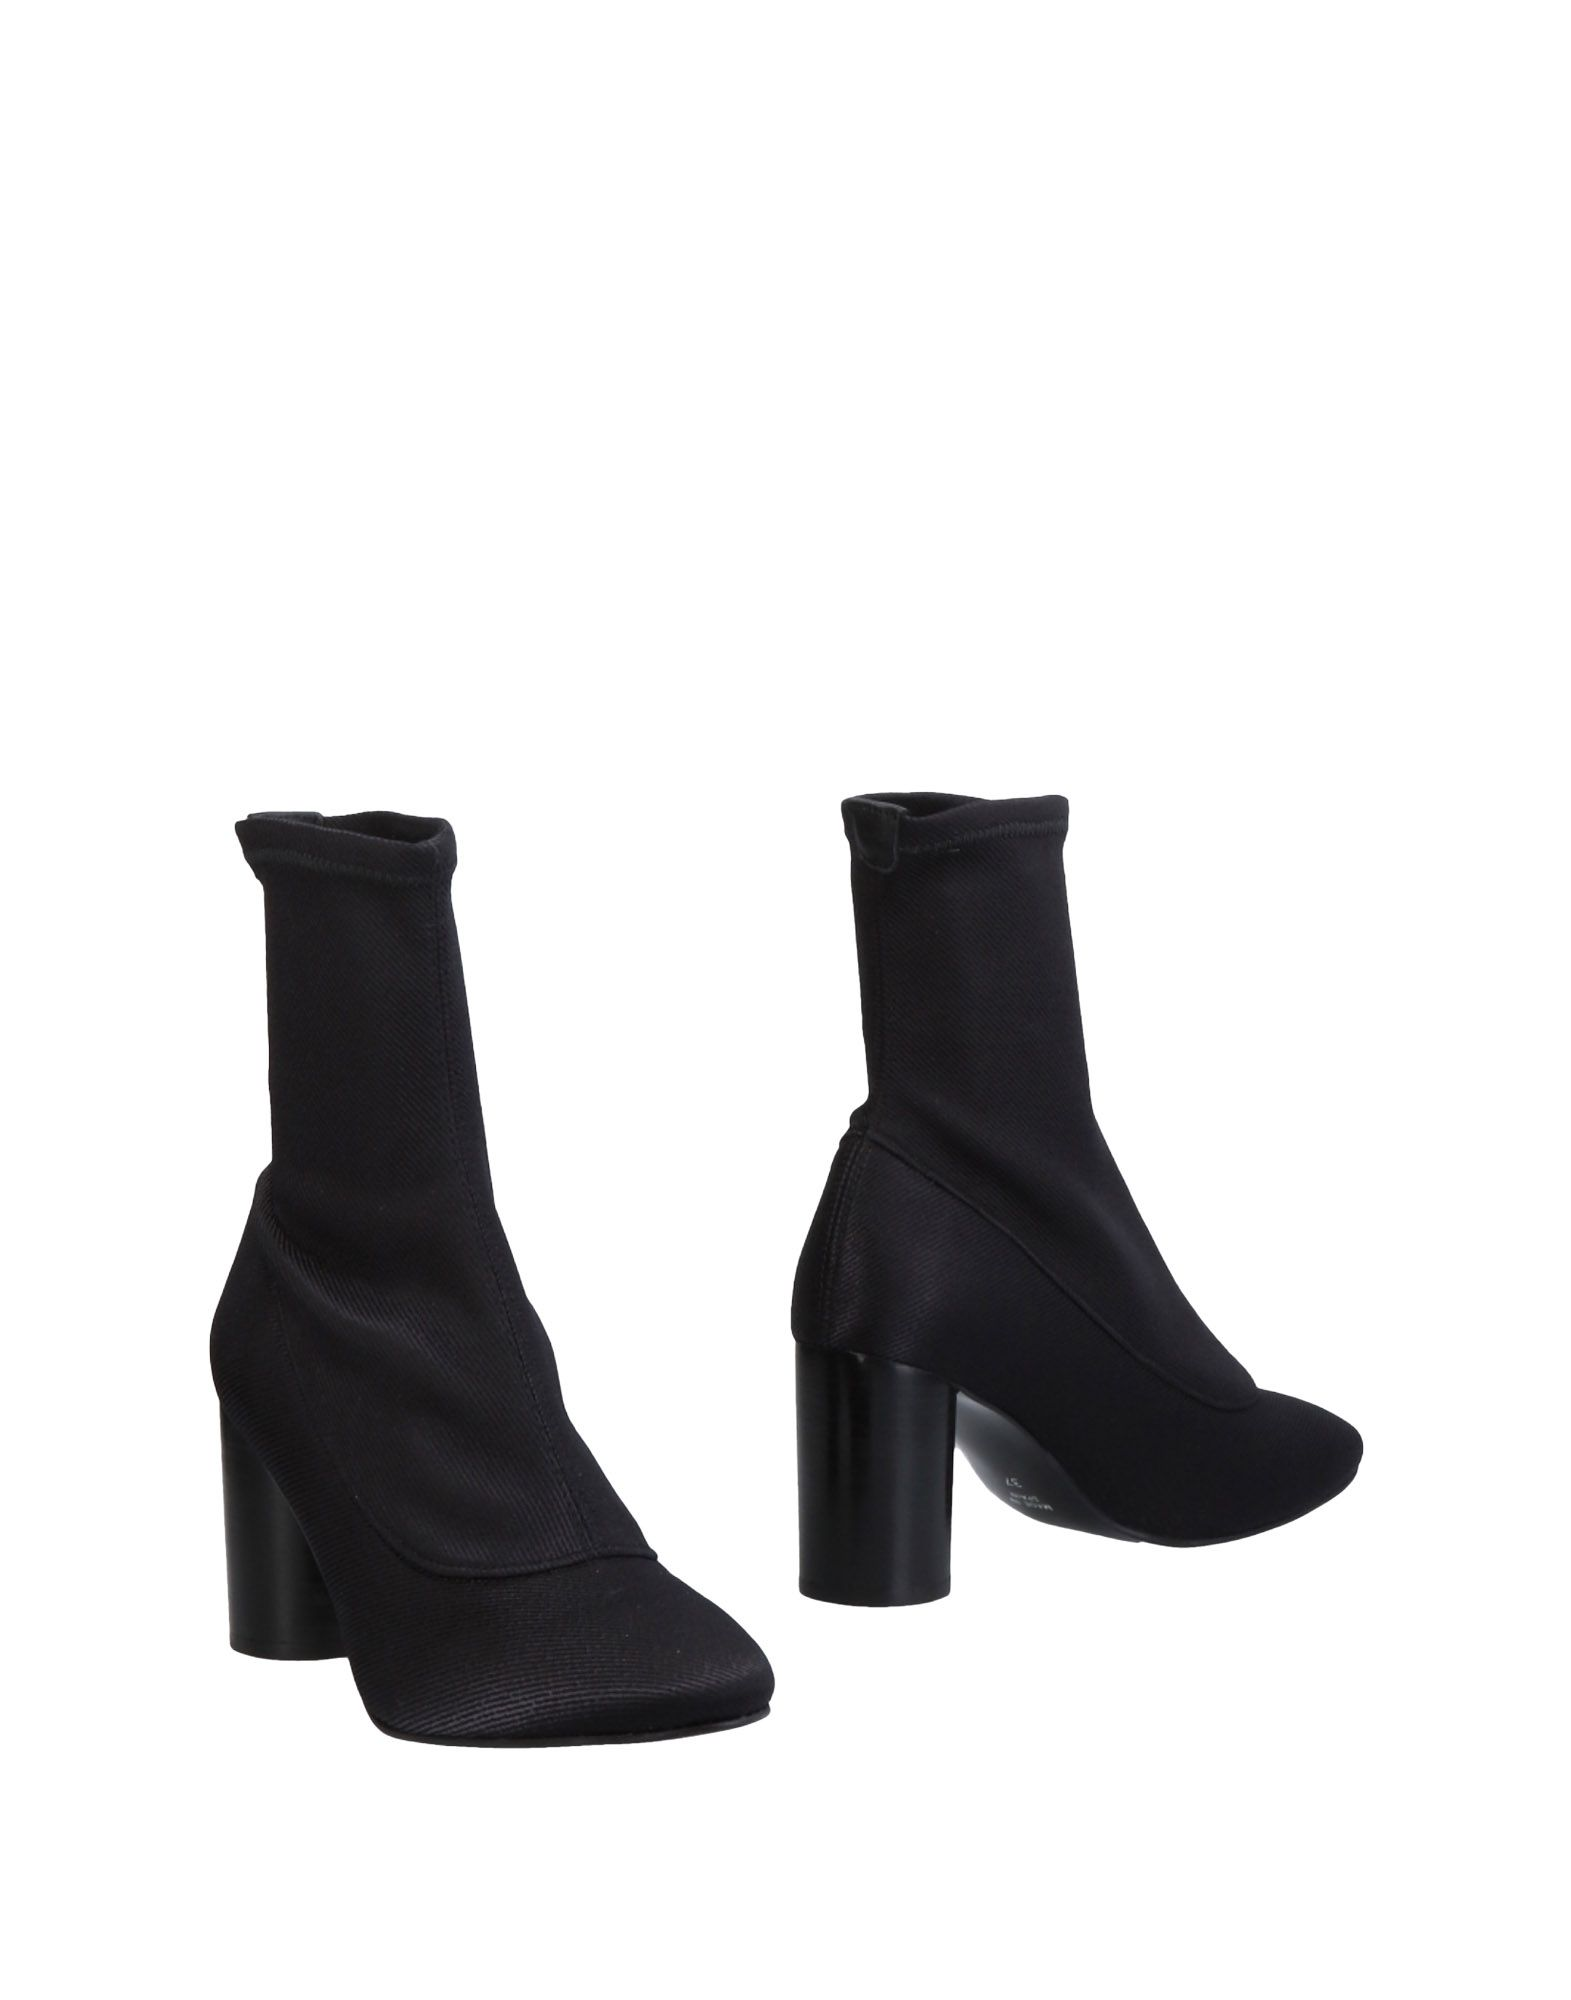 """Intentionally_______."" Ankle Boot - - Boot Women ""Intentionally_______."" Ankle Boots online on  United Kingdom - 11462790XJ 4ffeaf"